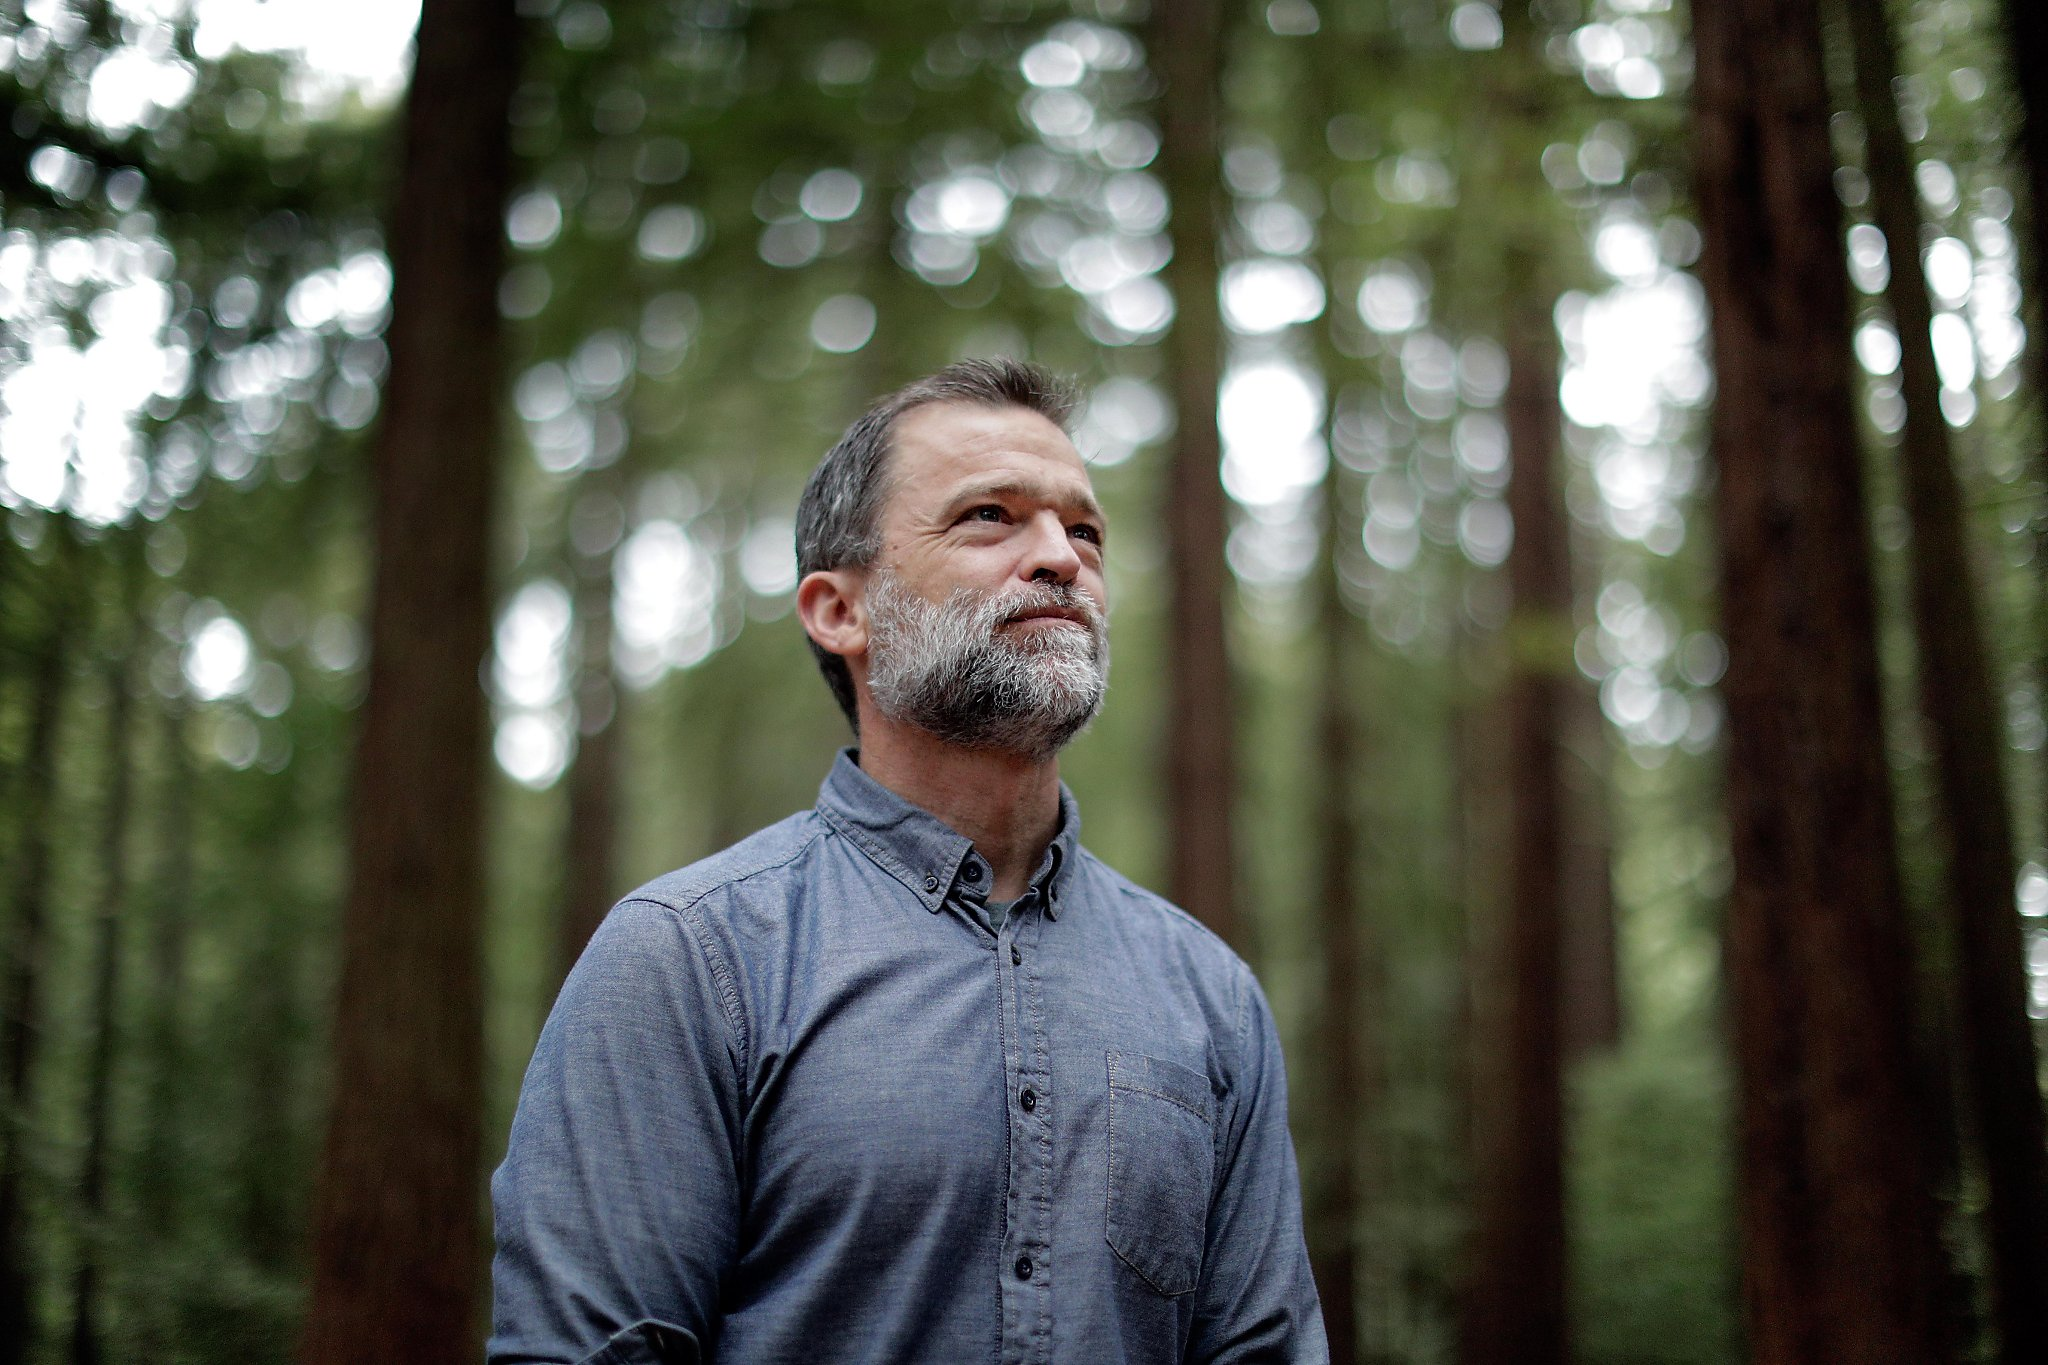 Why we need redwoods to fight climate change